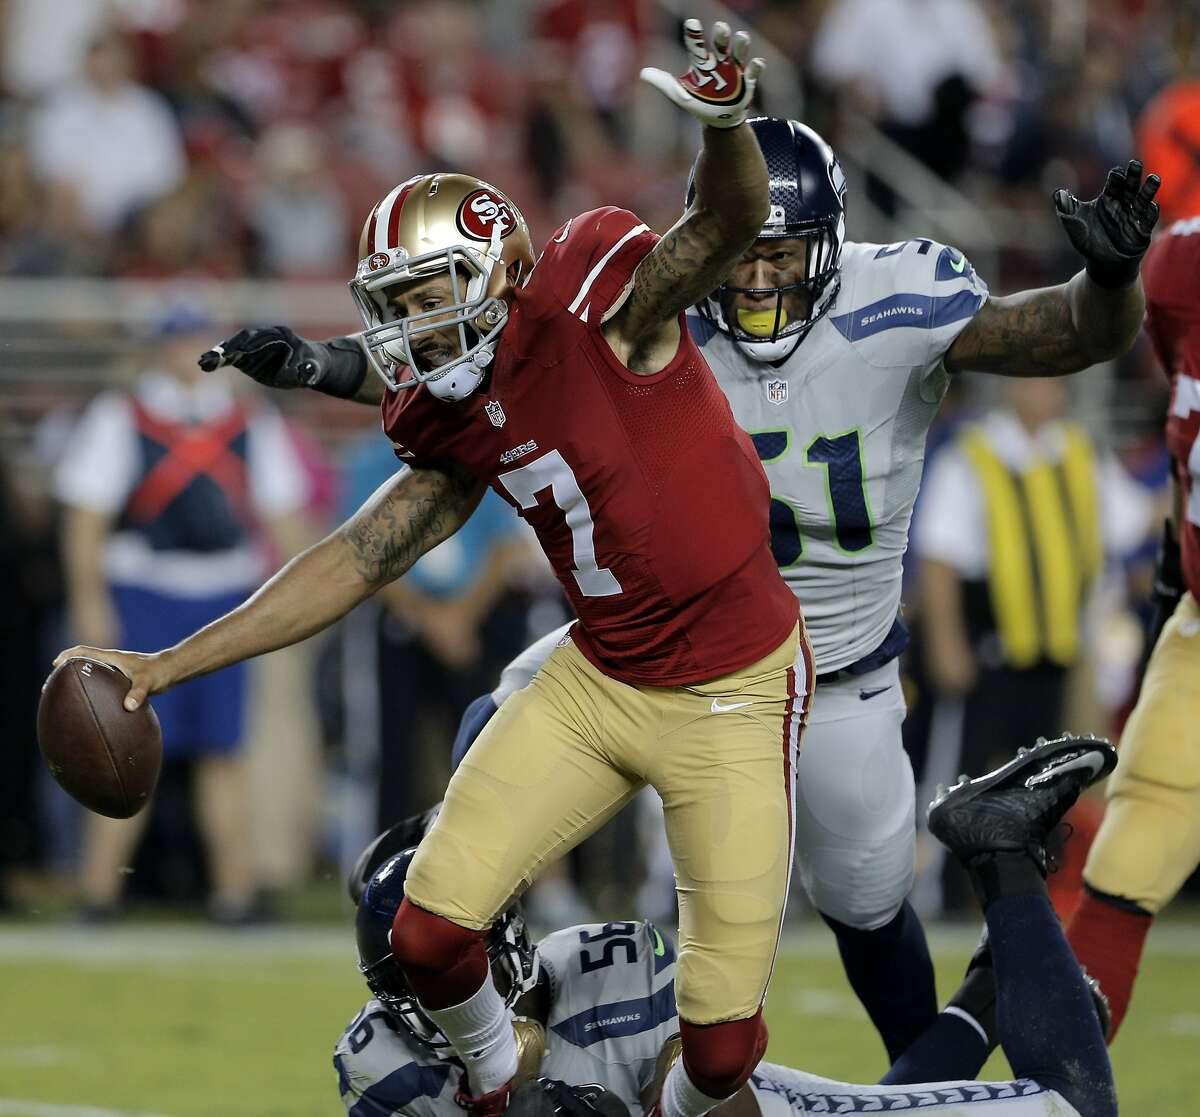 Colin Kaepernick (7) is sacked by Cliff Avril (56) with help from Bruce Irvin (51) in the first half of the 49ers game against the Seattle Seahawks at Levi's Stadium in Santa Clara, Calif., on Thursday, October 22, 2015.